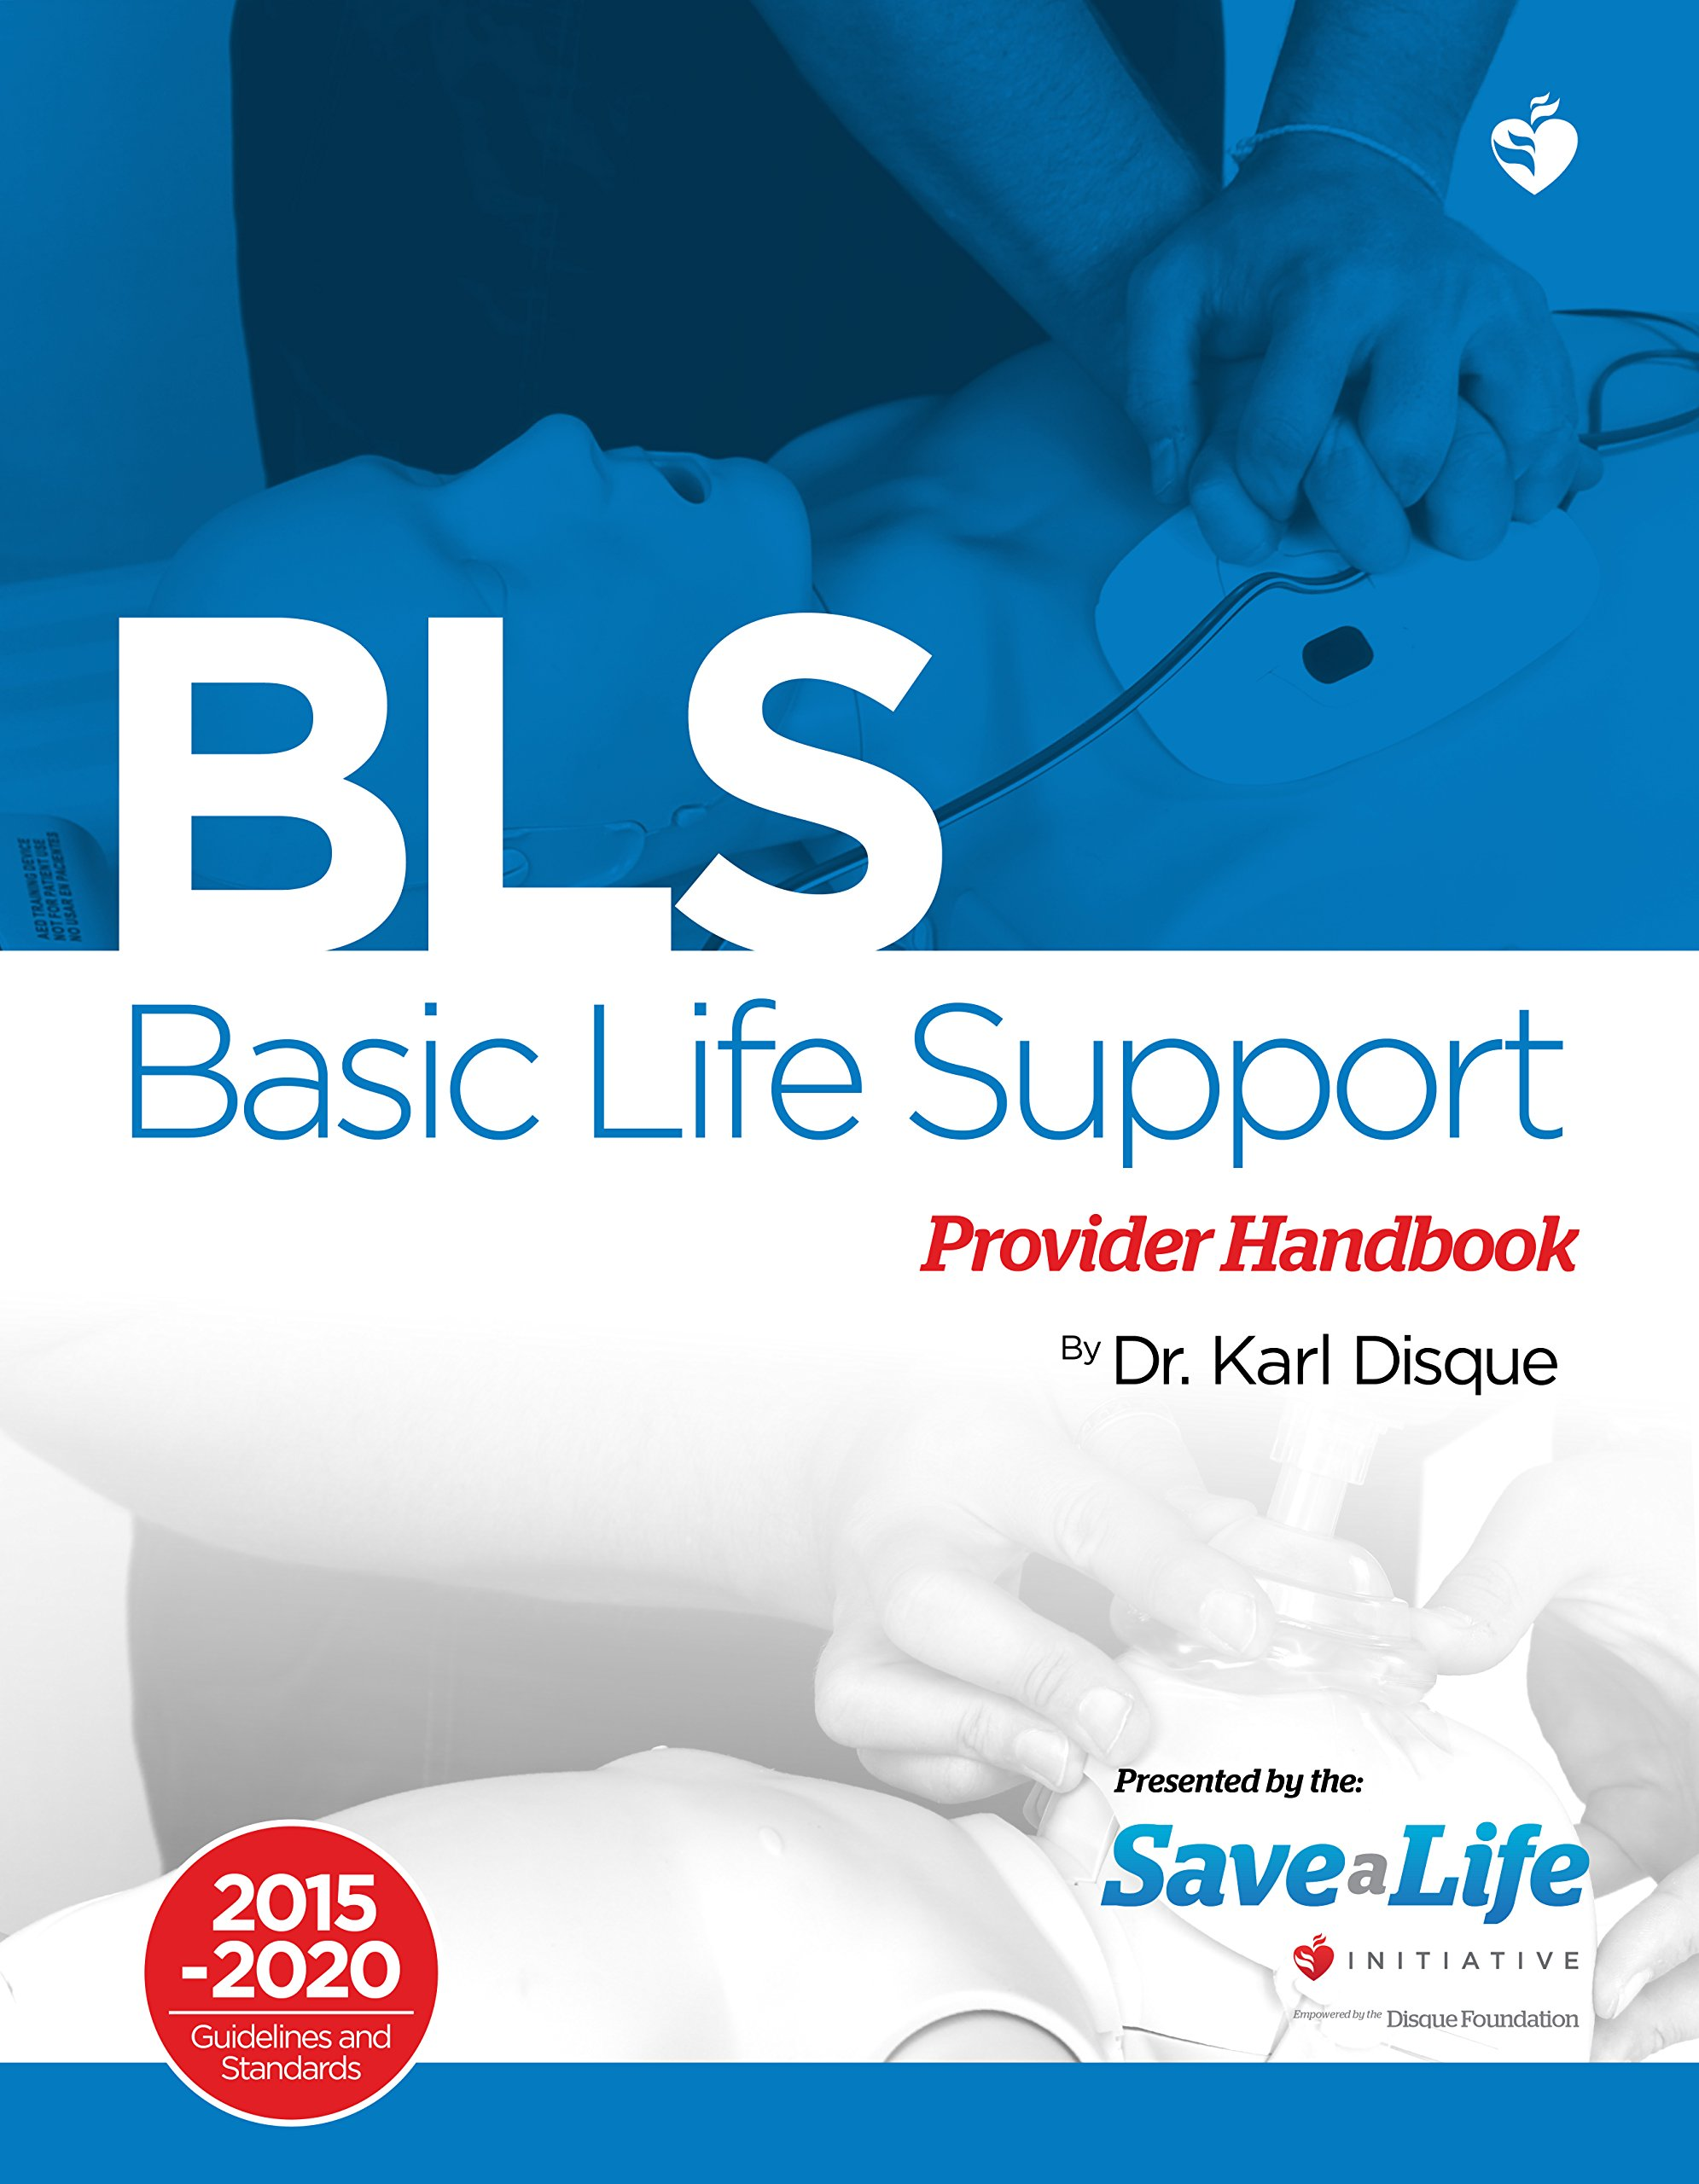 Basic Life Support Bls Provider Handbook First Aid Health Care